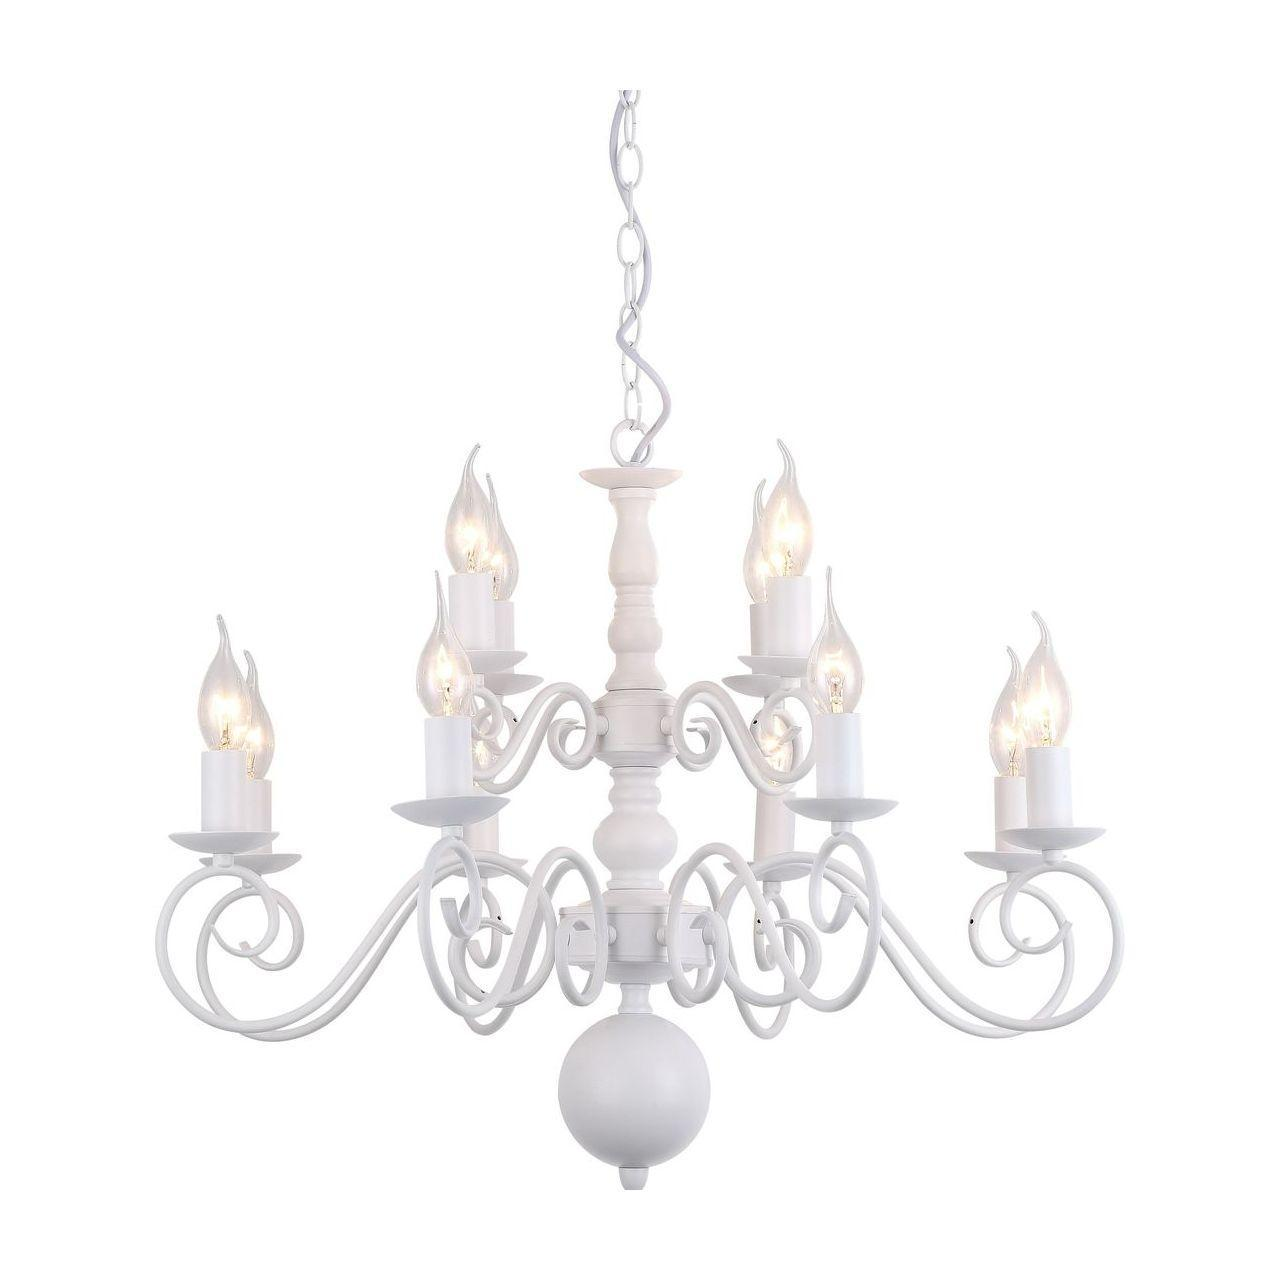 Люстра Arte Lamp A1129LM-12WH подвесная подвесная люстра arte lamp montmartre a3239lm 12wh